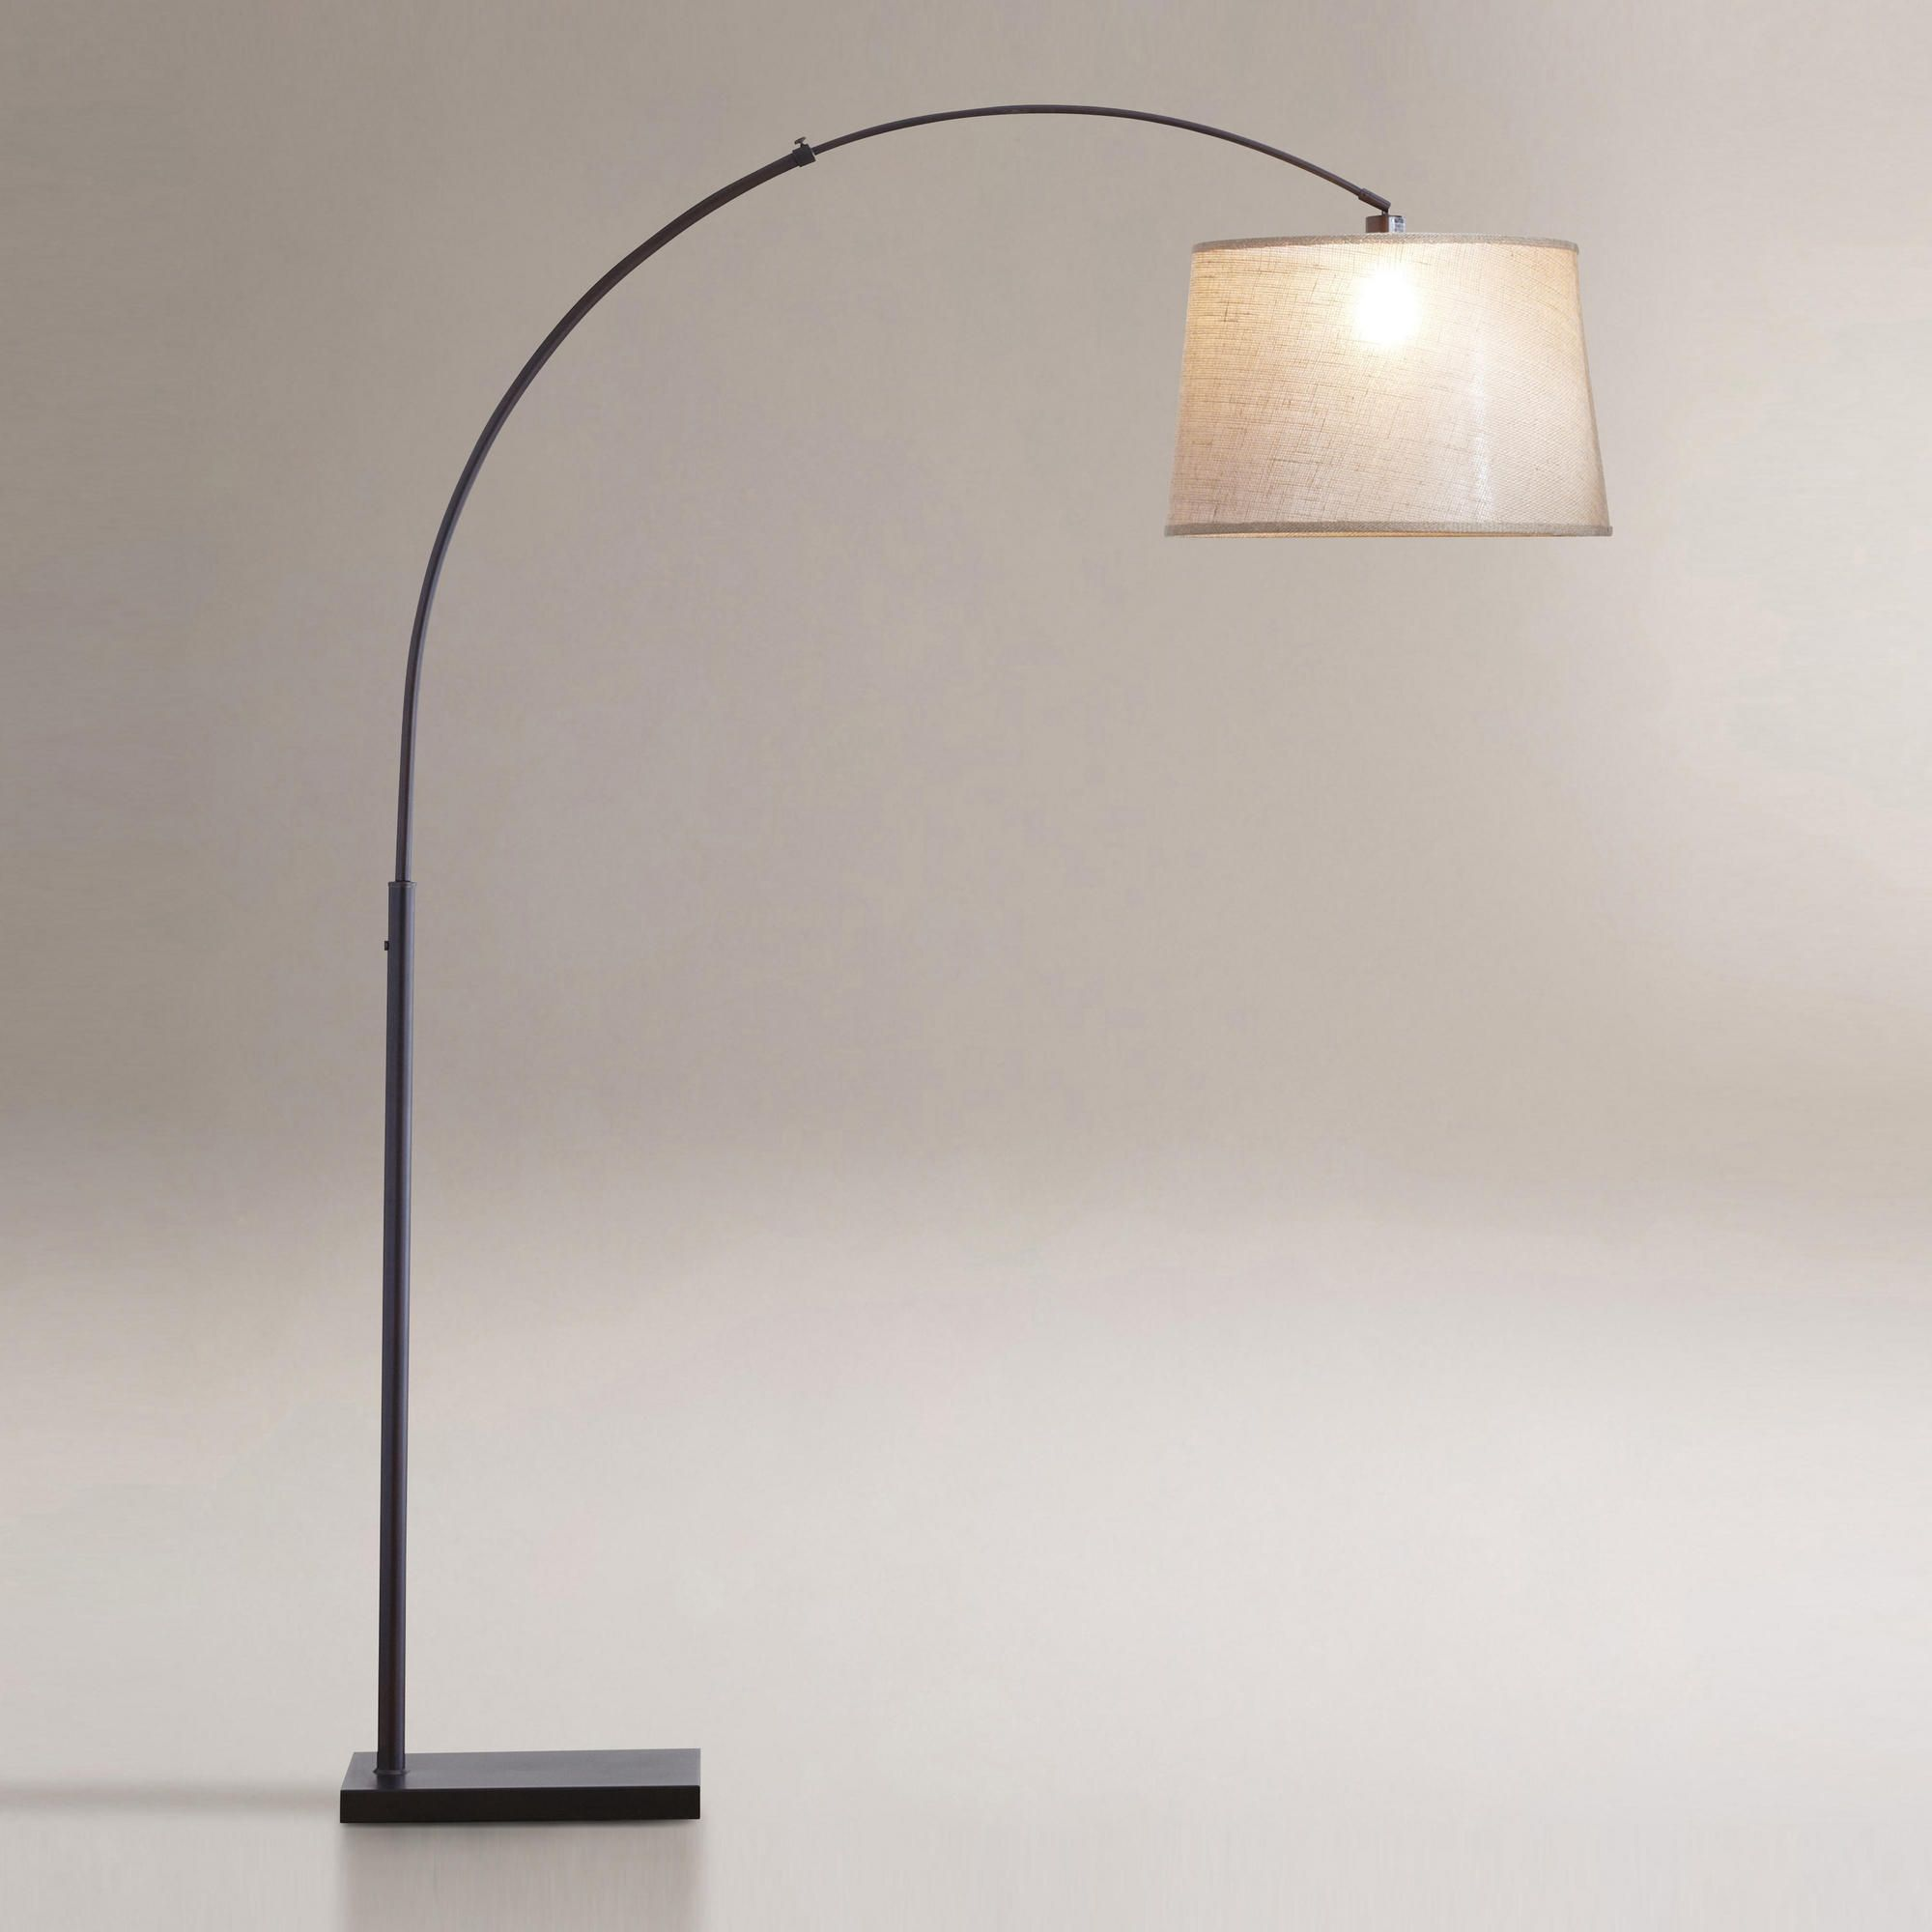 Floor Lamp Base Pleasing Large Shade Arc Floor Lamp  Httpafshowcaseprop  Pinterest Inspiration Design